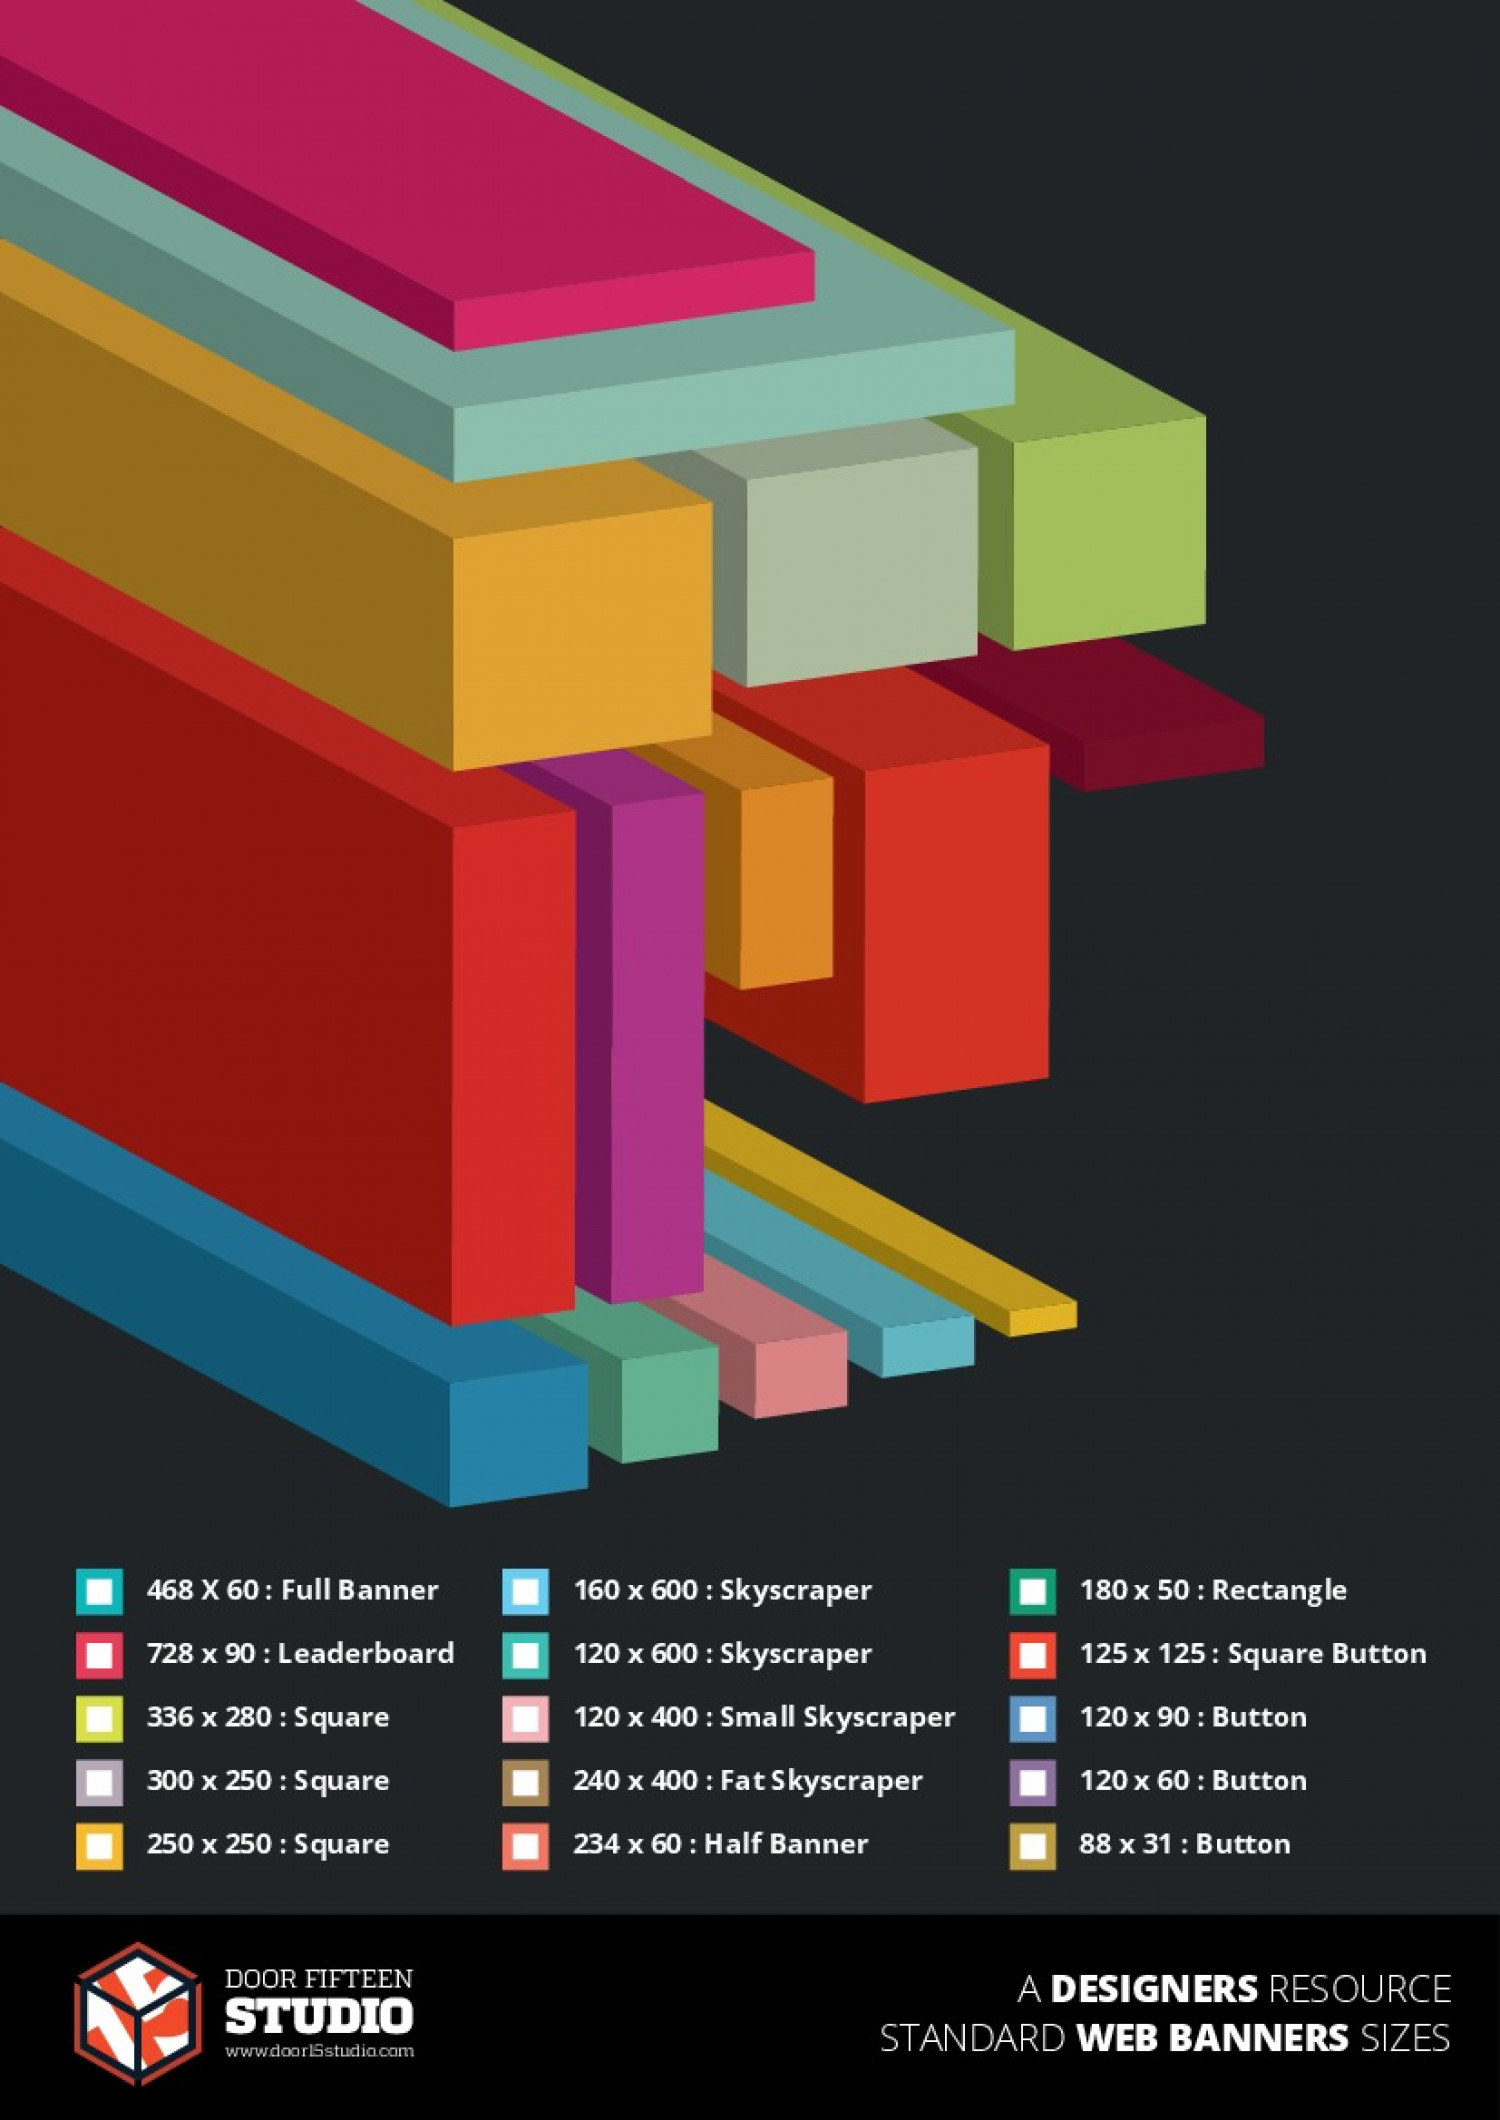 Standard Web Banner Sizes Infographic